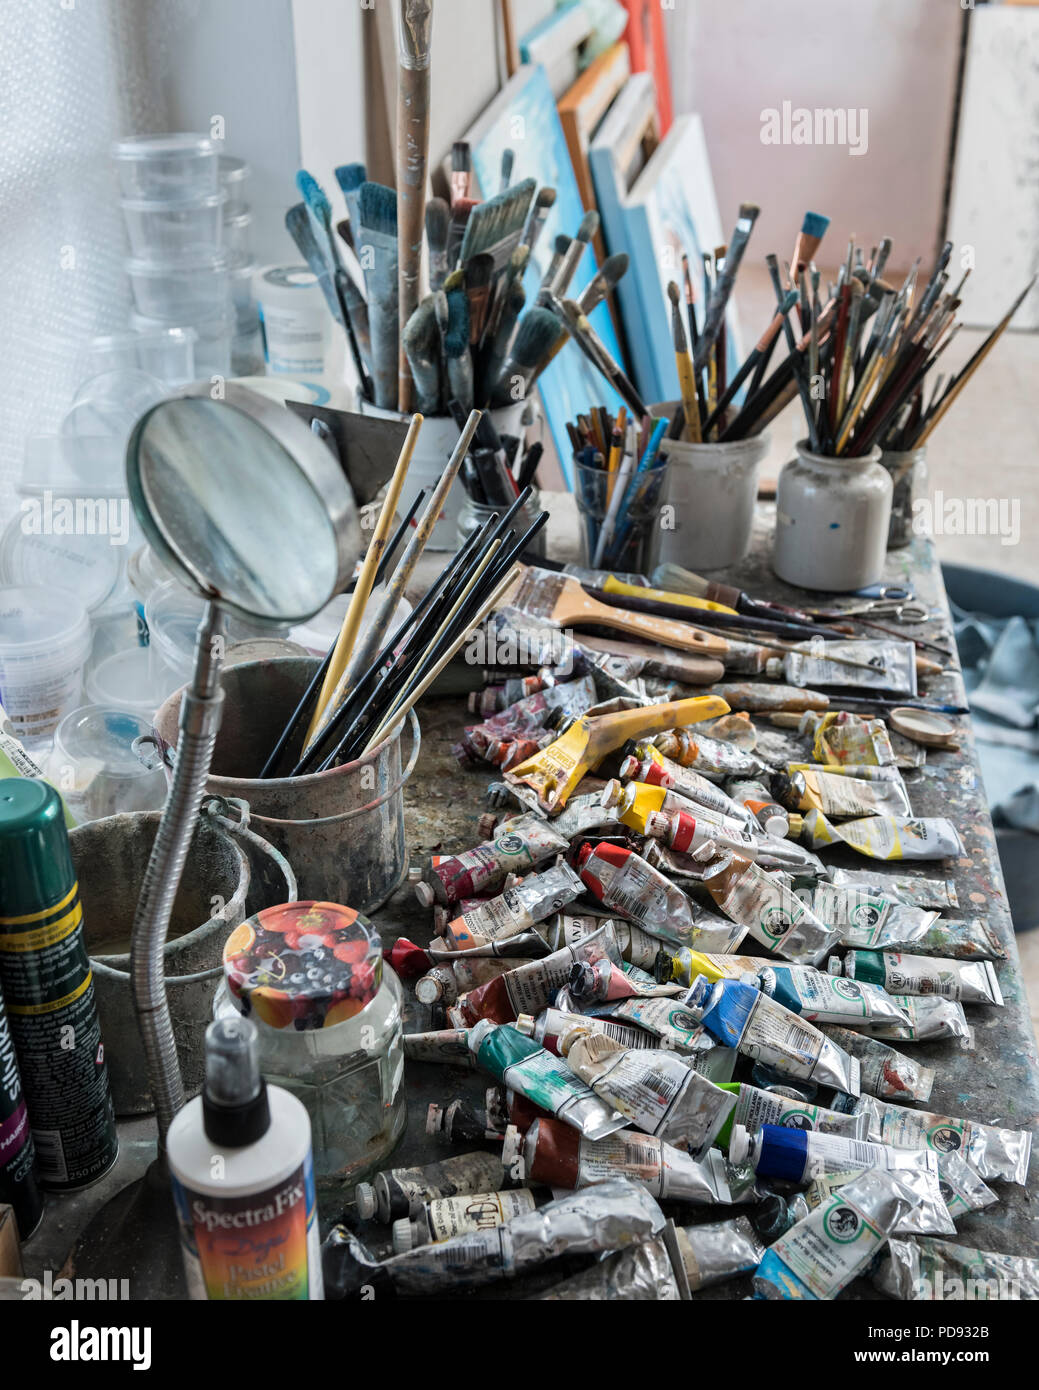 Paint brushes and oil paints in an artist's studio - Stock Image